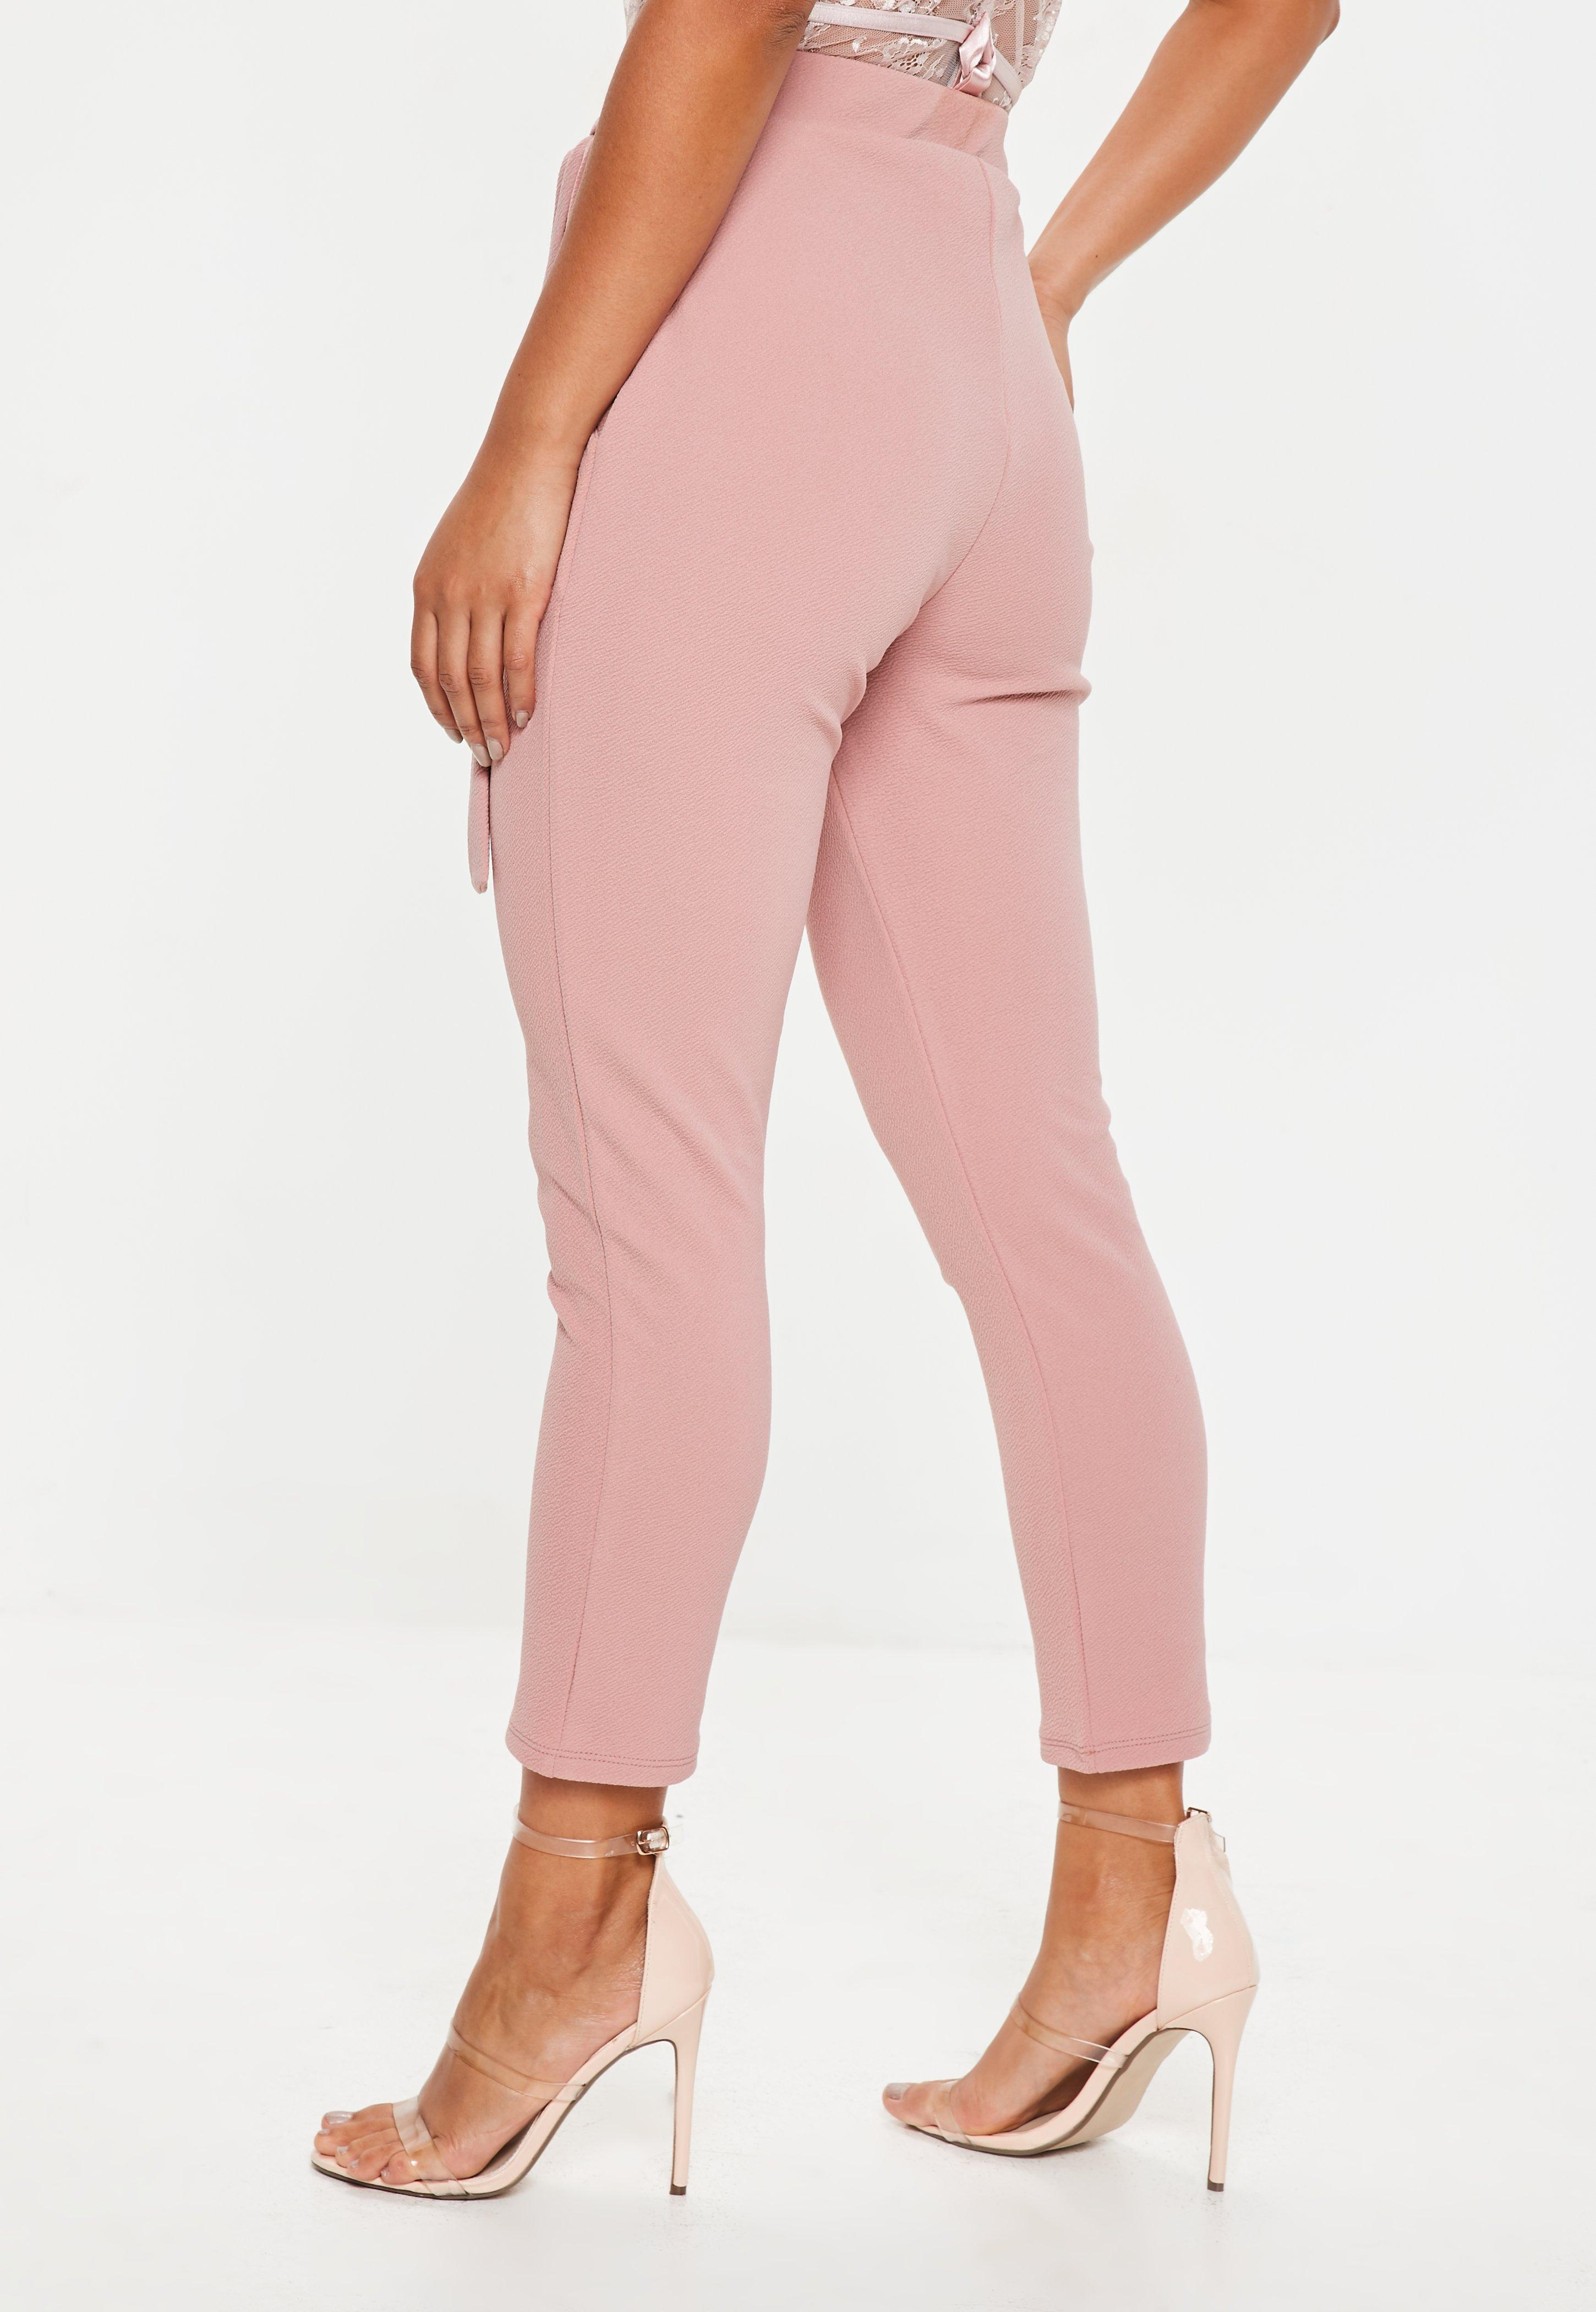 10f1008226650e Missguided - Natural Nude Stretch Crepe Tie Waist Cigarette Trousers -  Lyst. View fullscreen